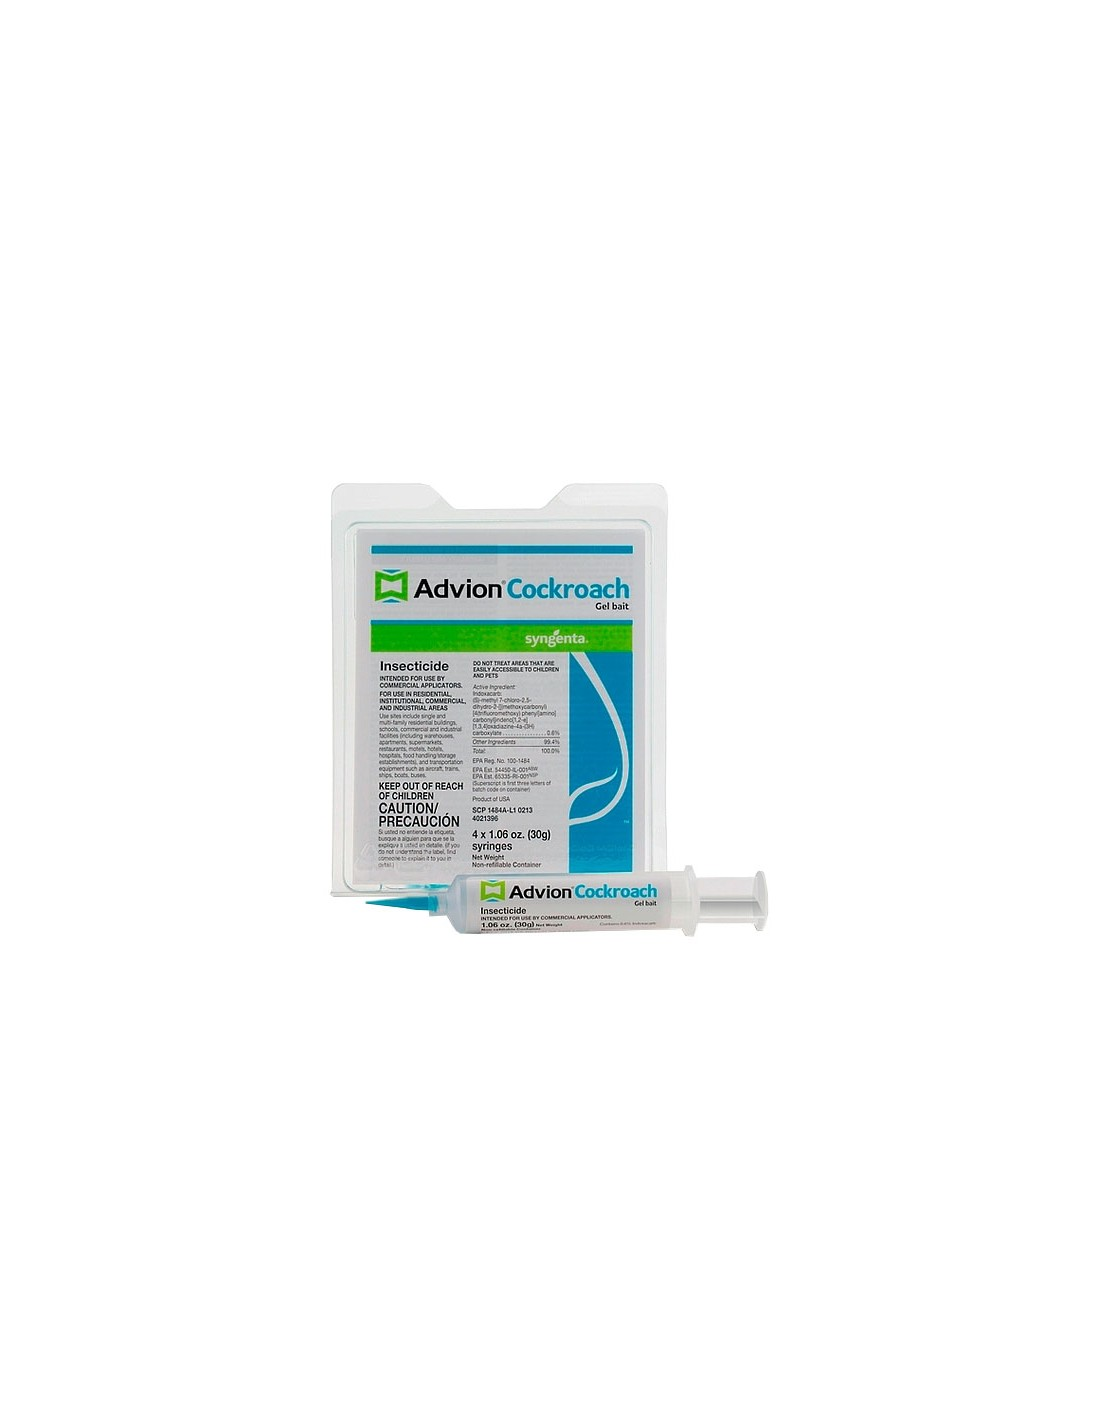 i read advion is good in killing cockroaches is this the best and safe since i am pregnant.